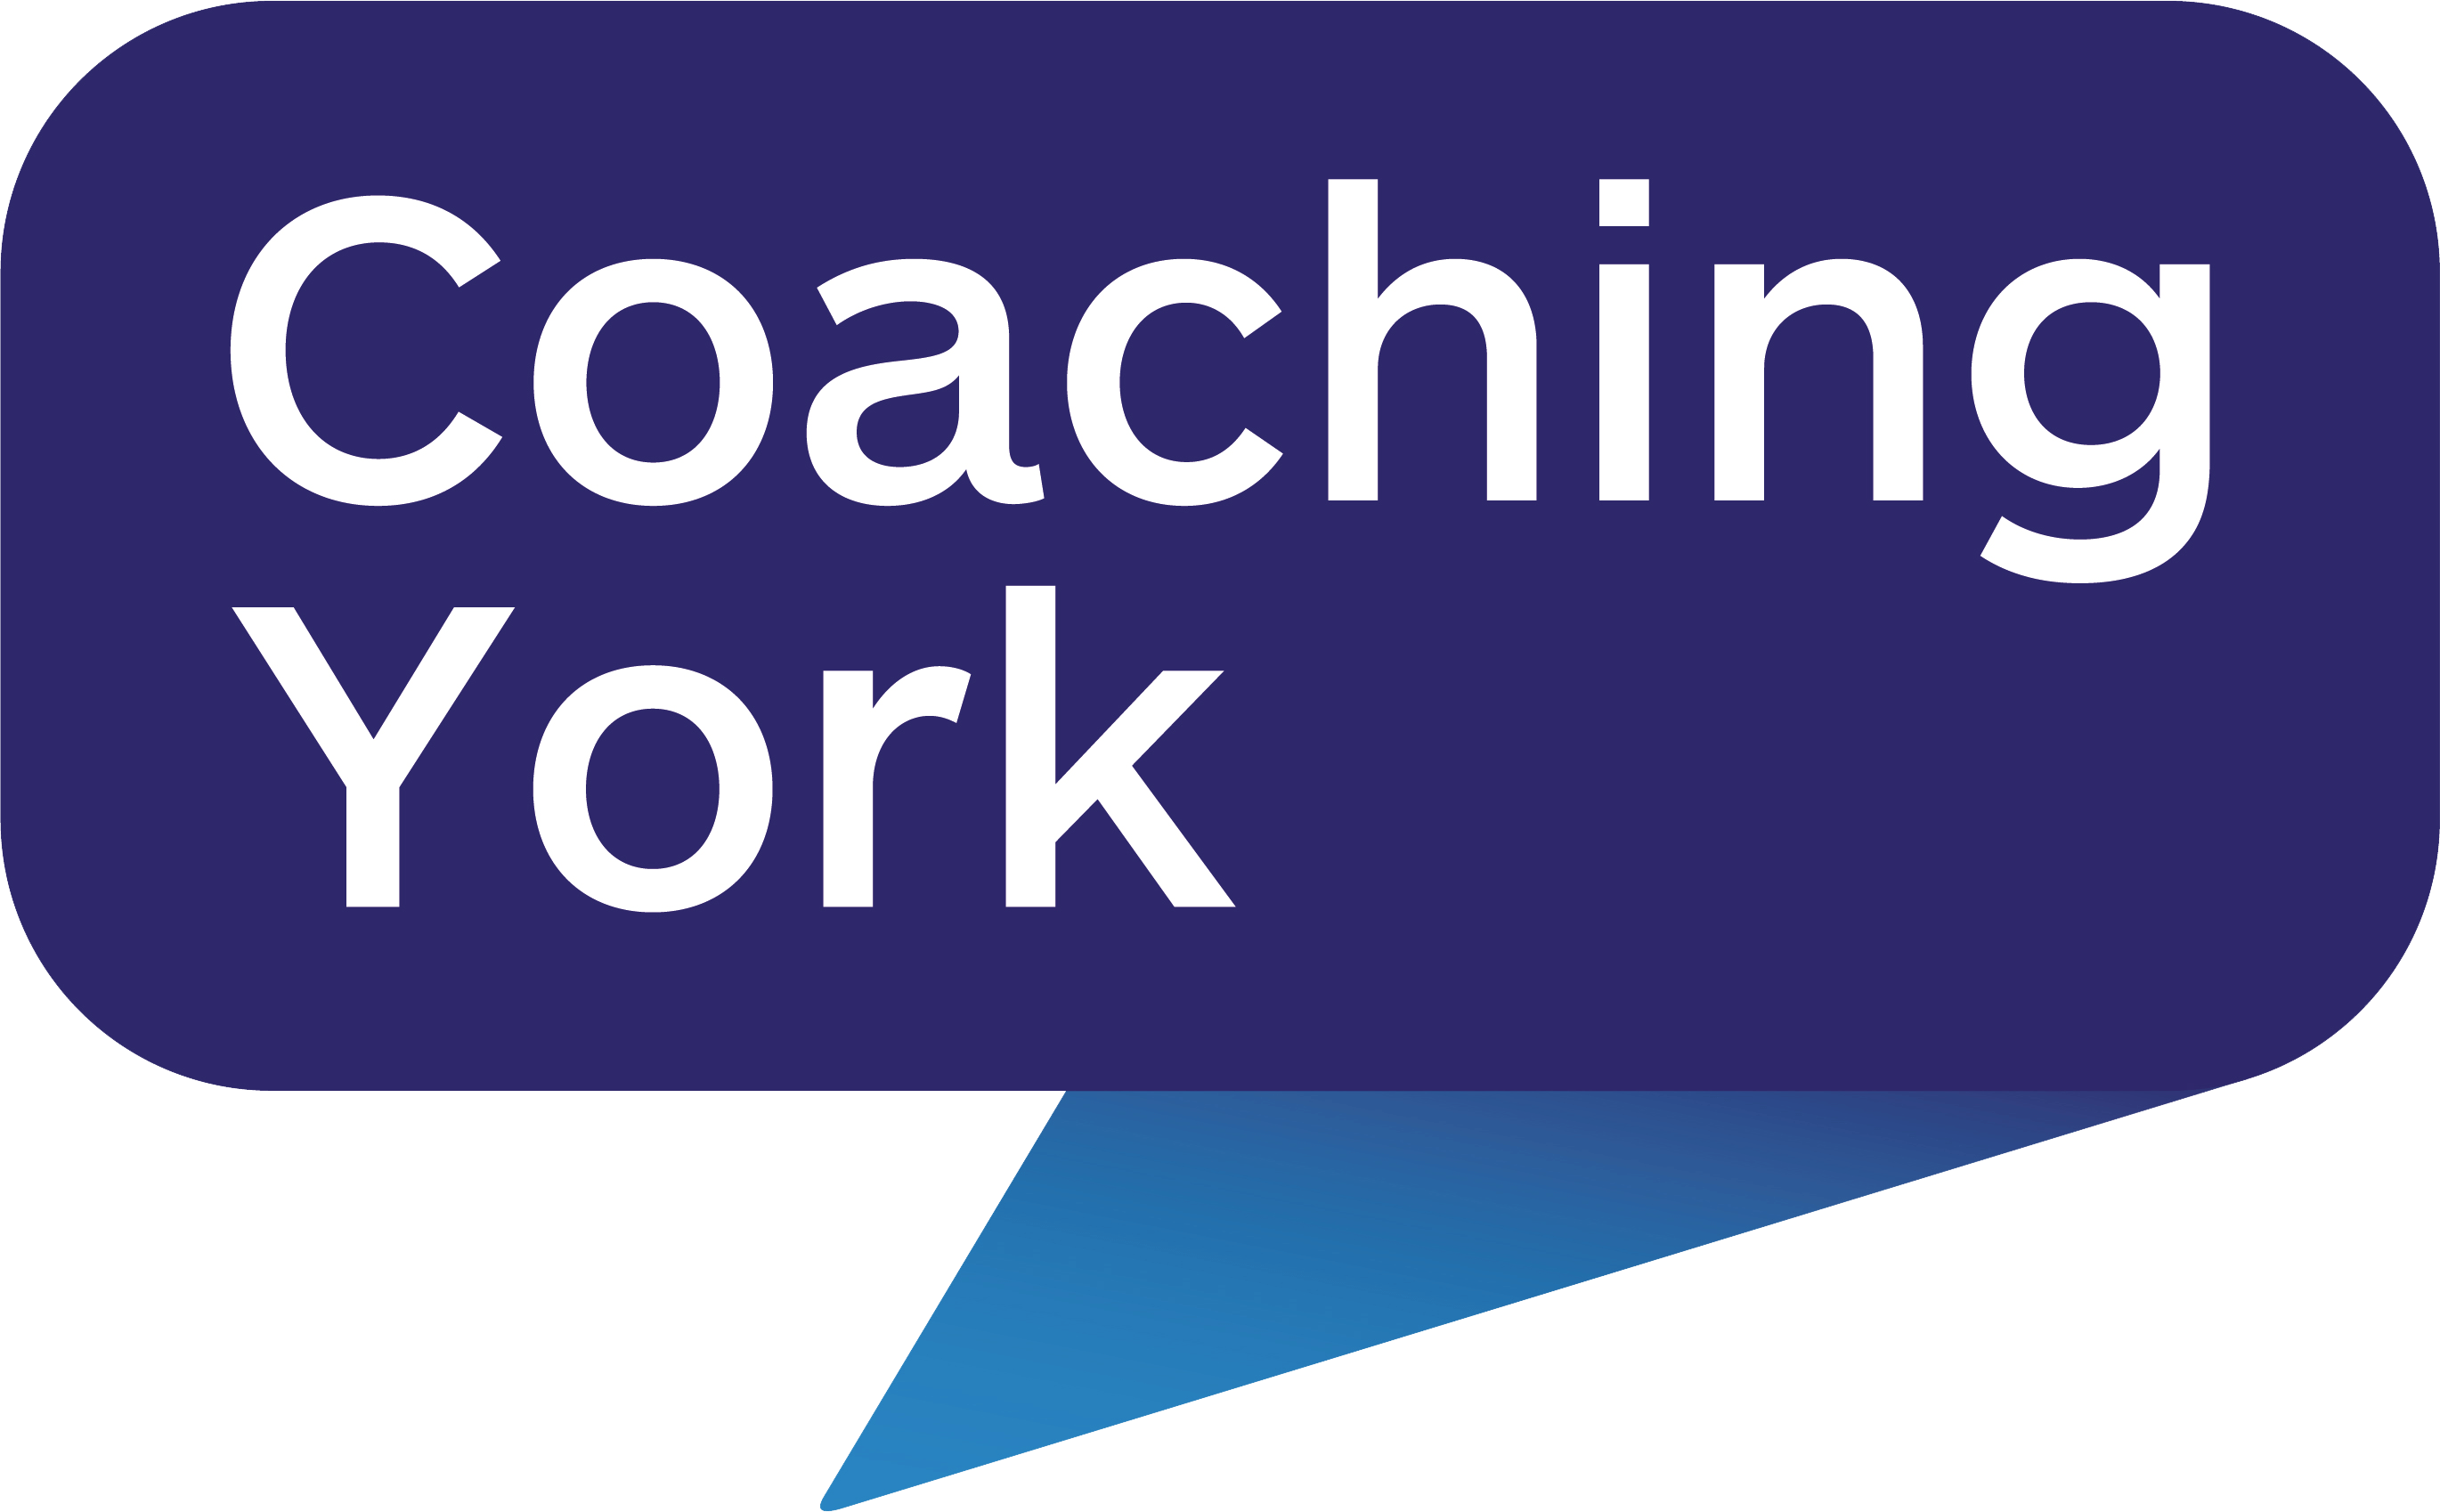 Coaching York Logo